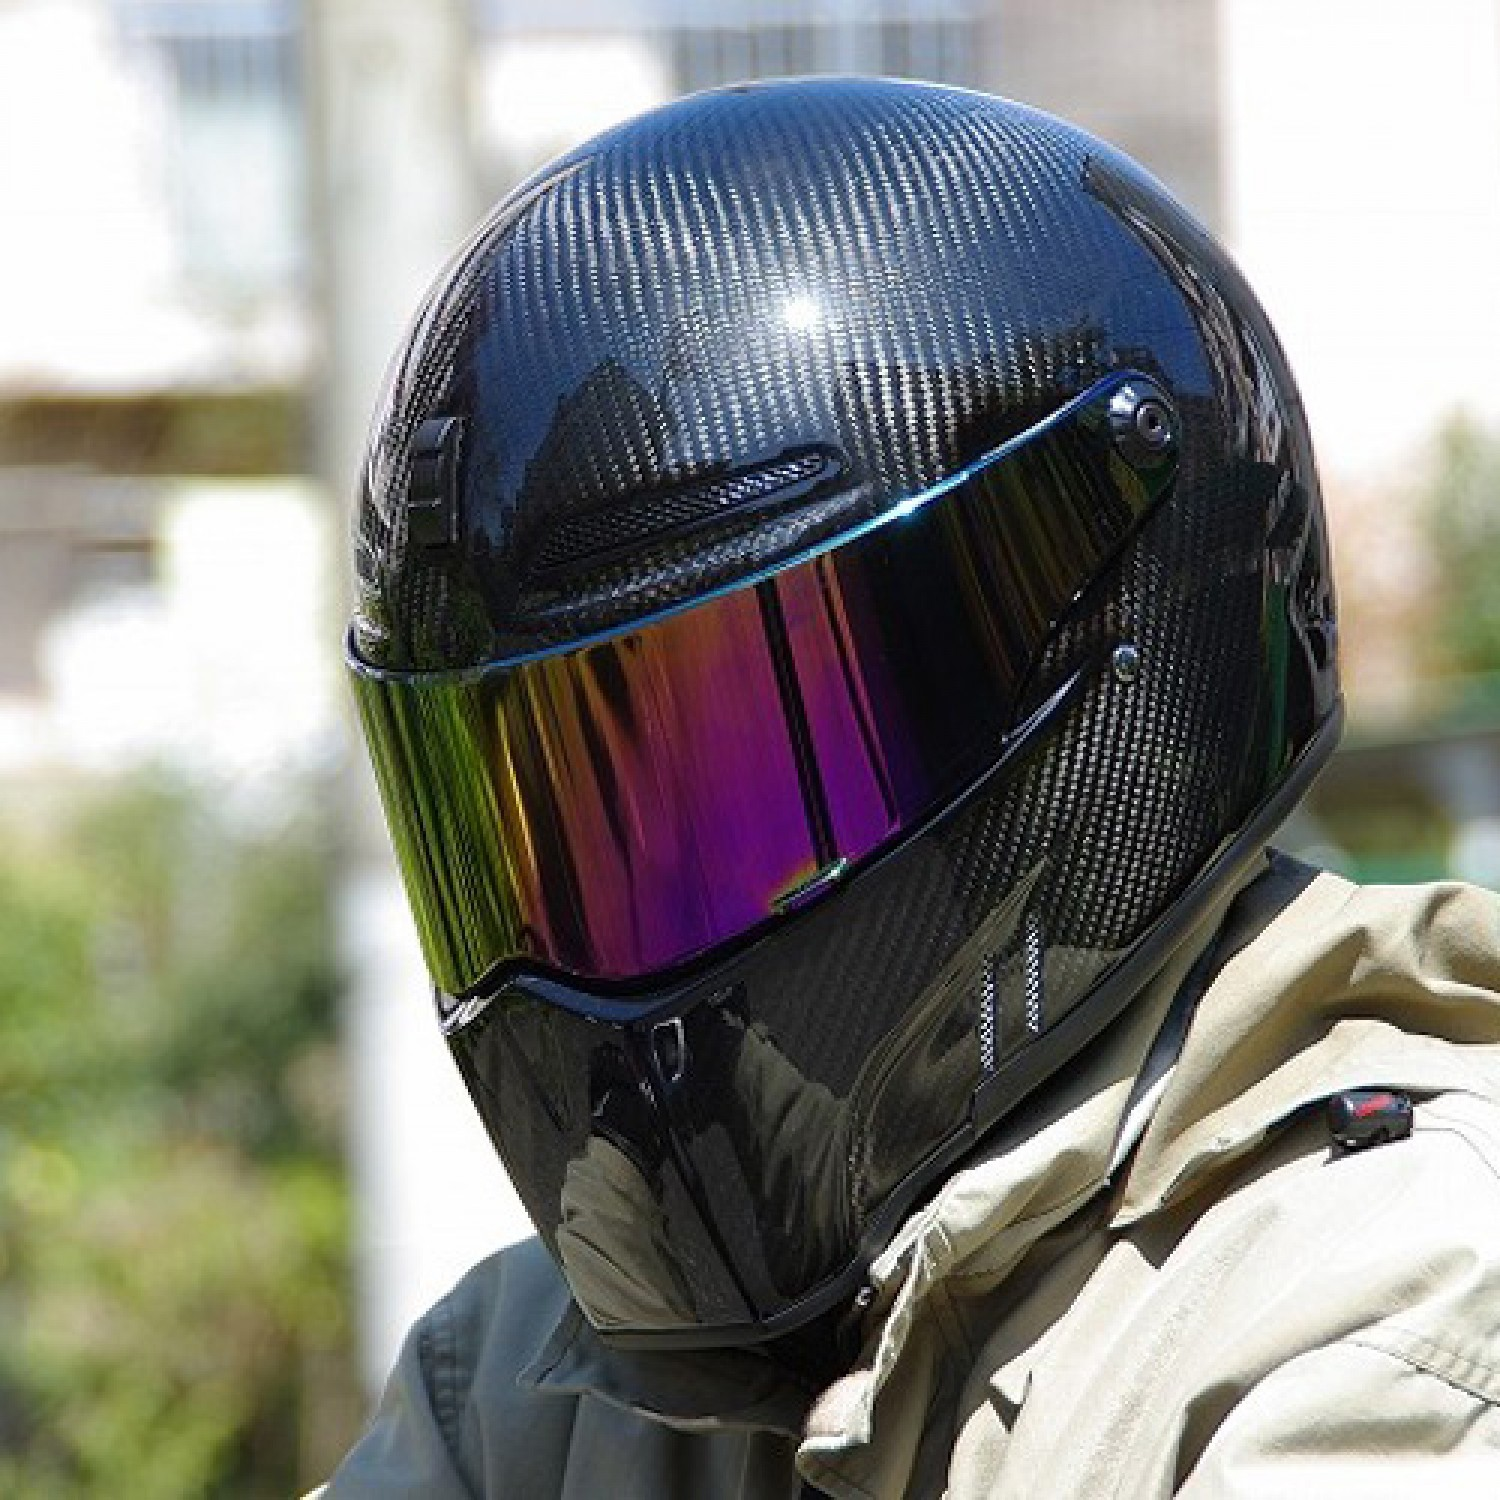 casque bandit visi re iridium alien ii fighter exx krax moto. Black Bedroom Furniture Sets. Home Design Ideas